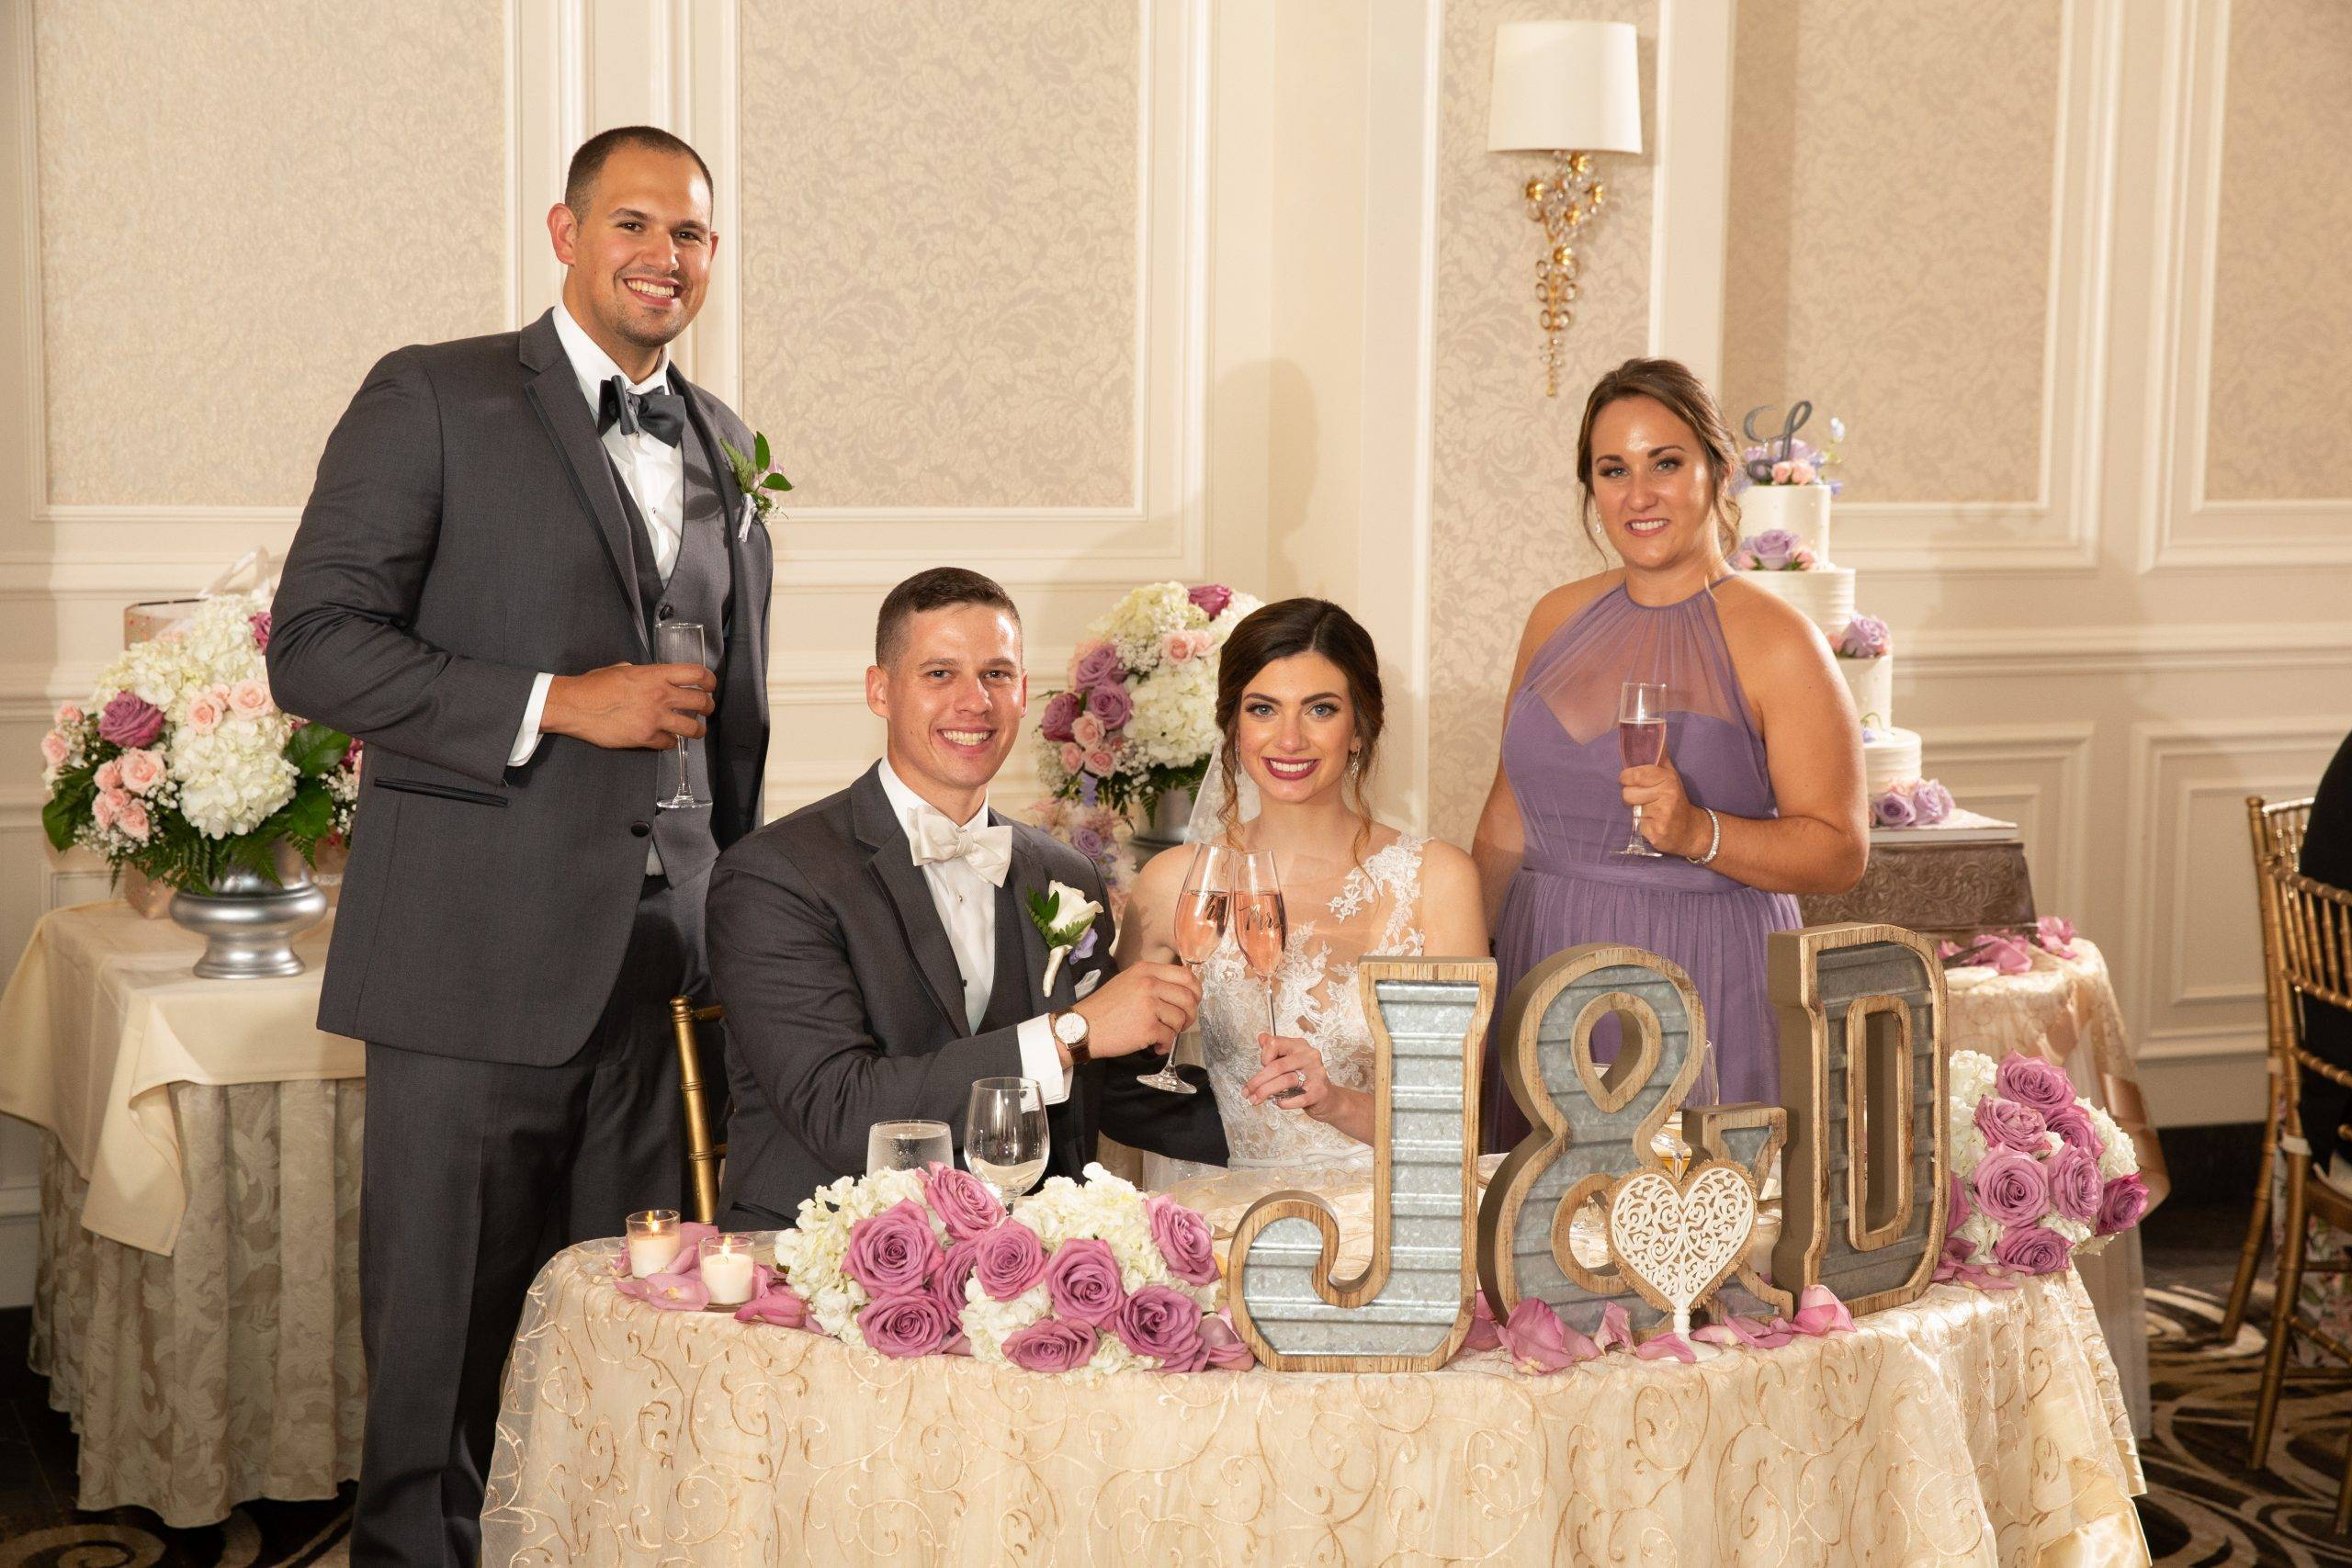 Meadow Wood wedding couple with best man and maid of honor